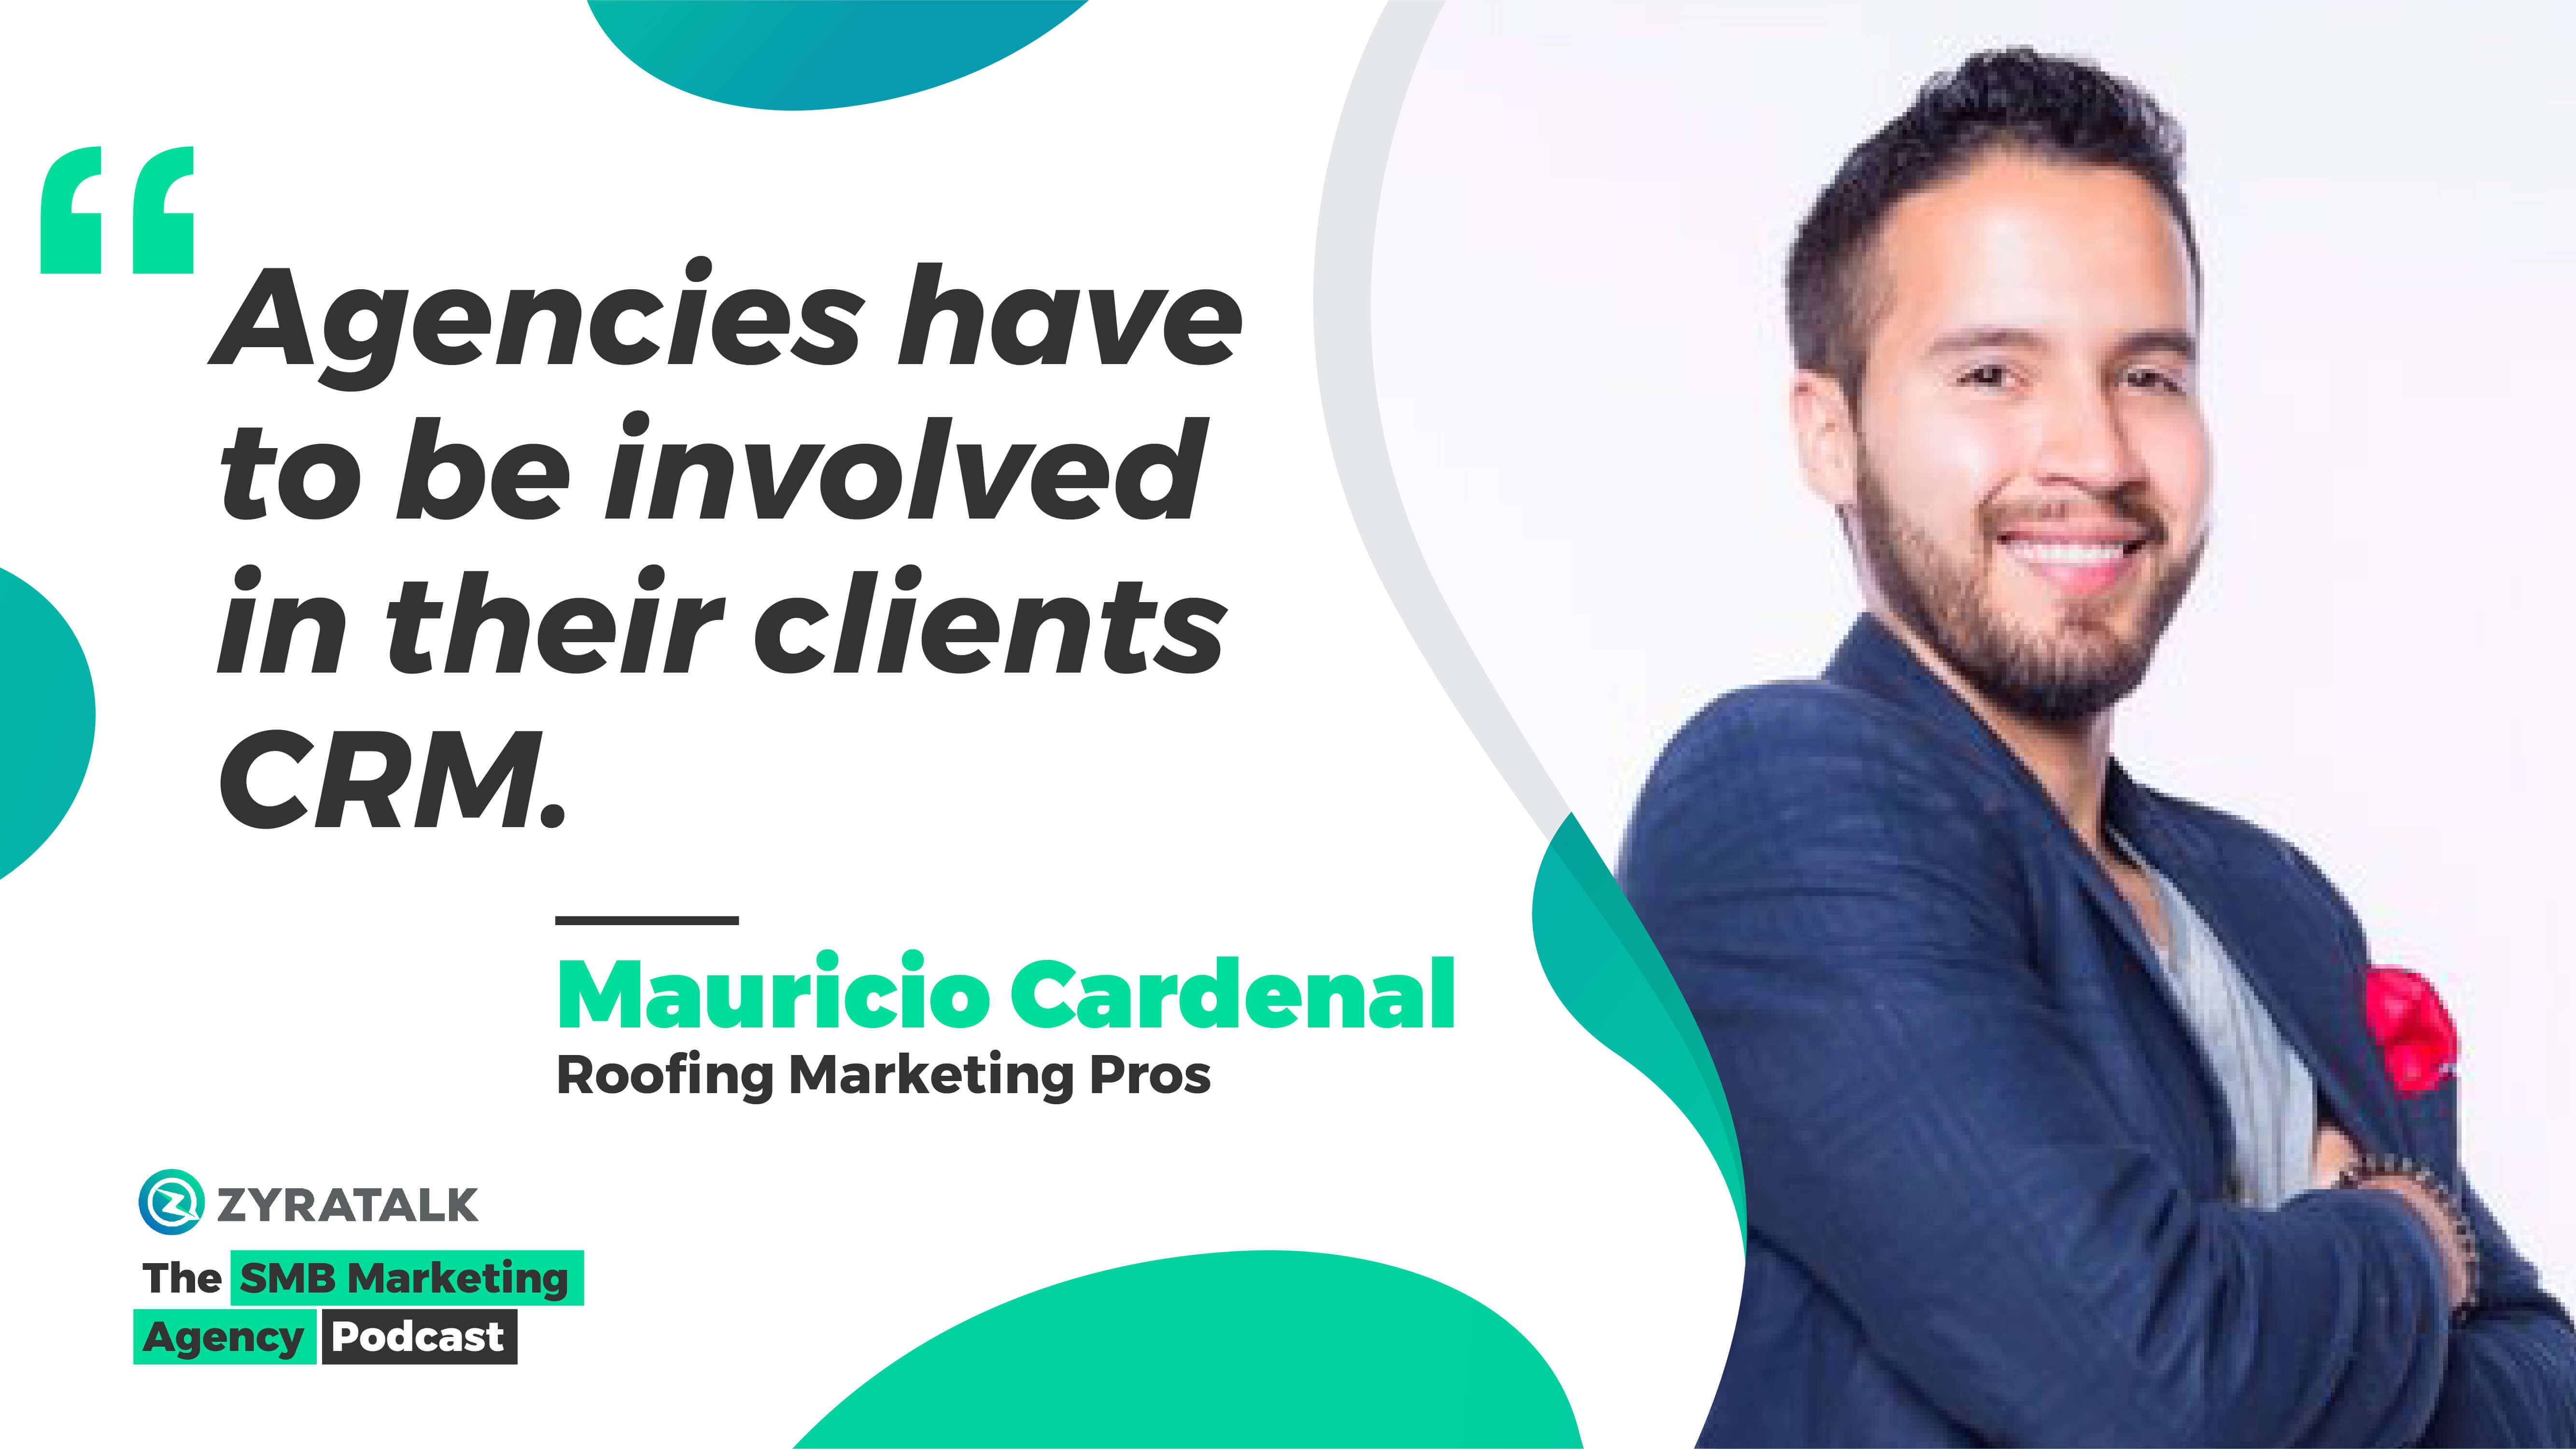 marketing podcast for small business mauricio cardenal roofing marketing pros